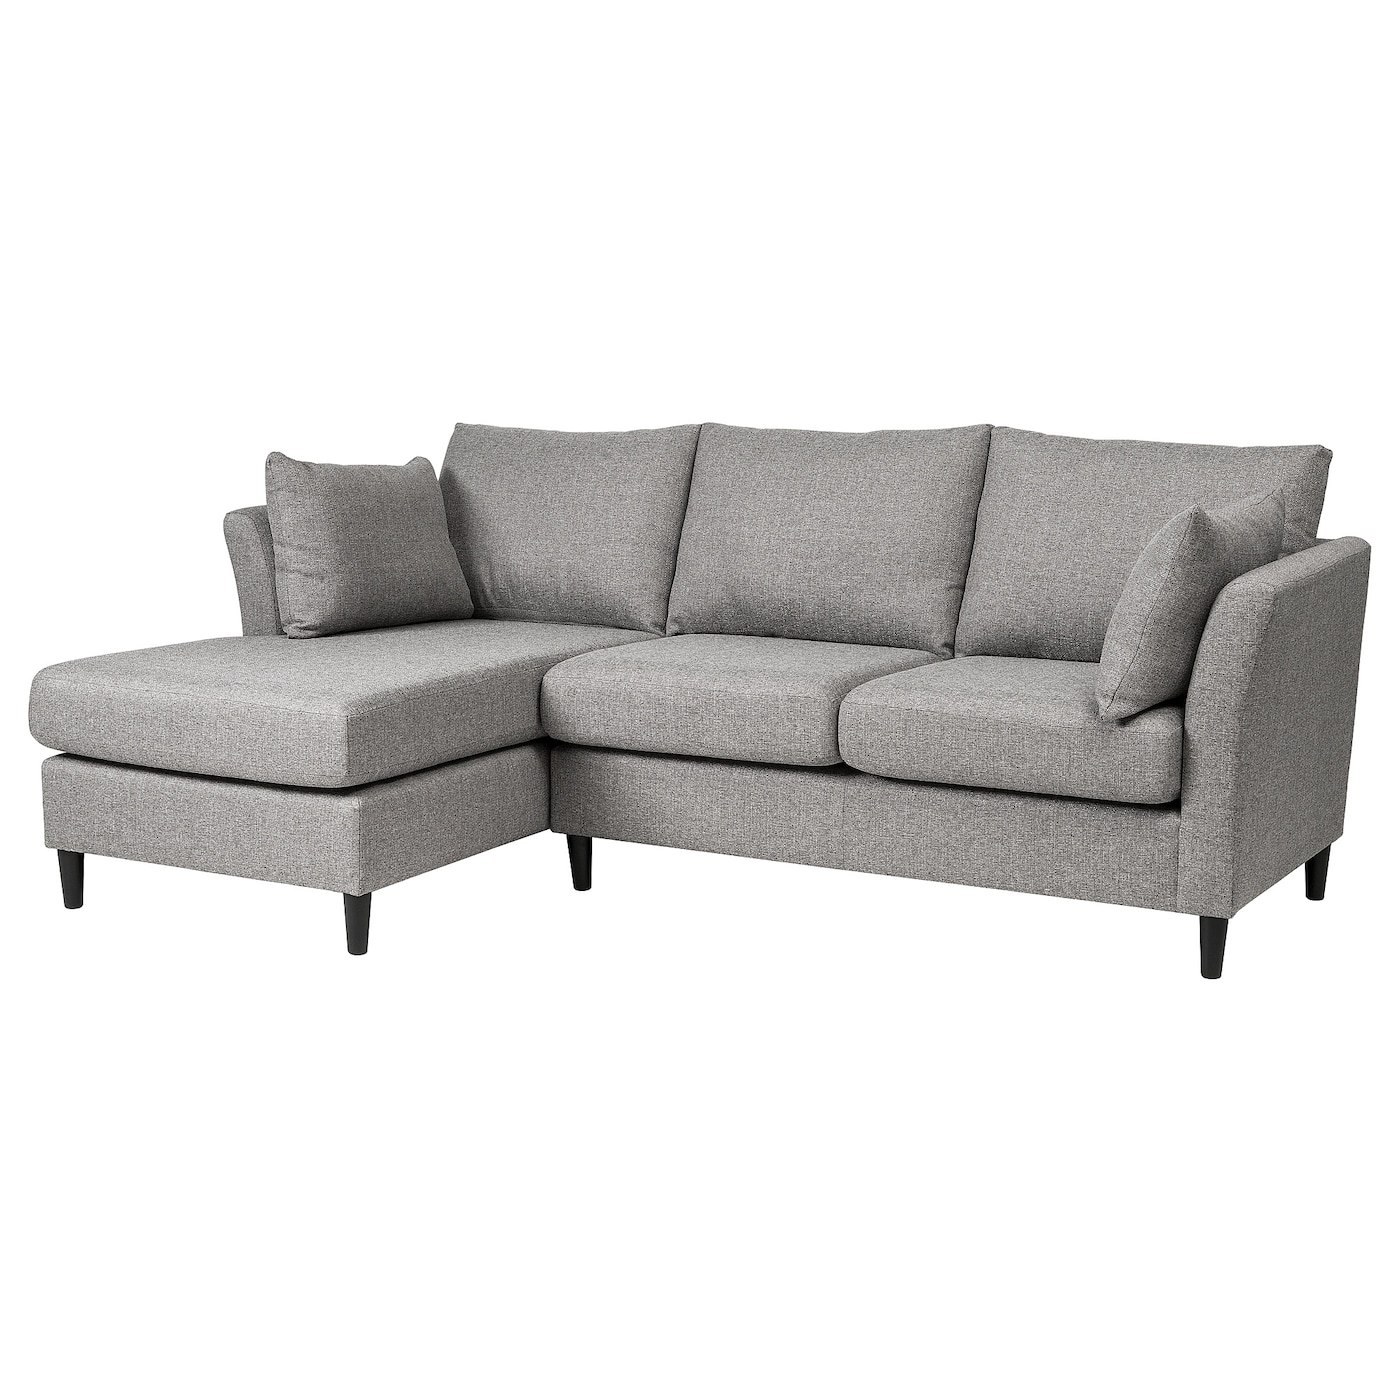 2 seater sofa with chaise sofas 2 3 seater fabric leather for 2 5 seater sofa with chaise